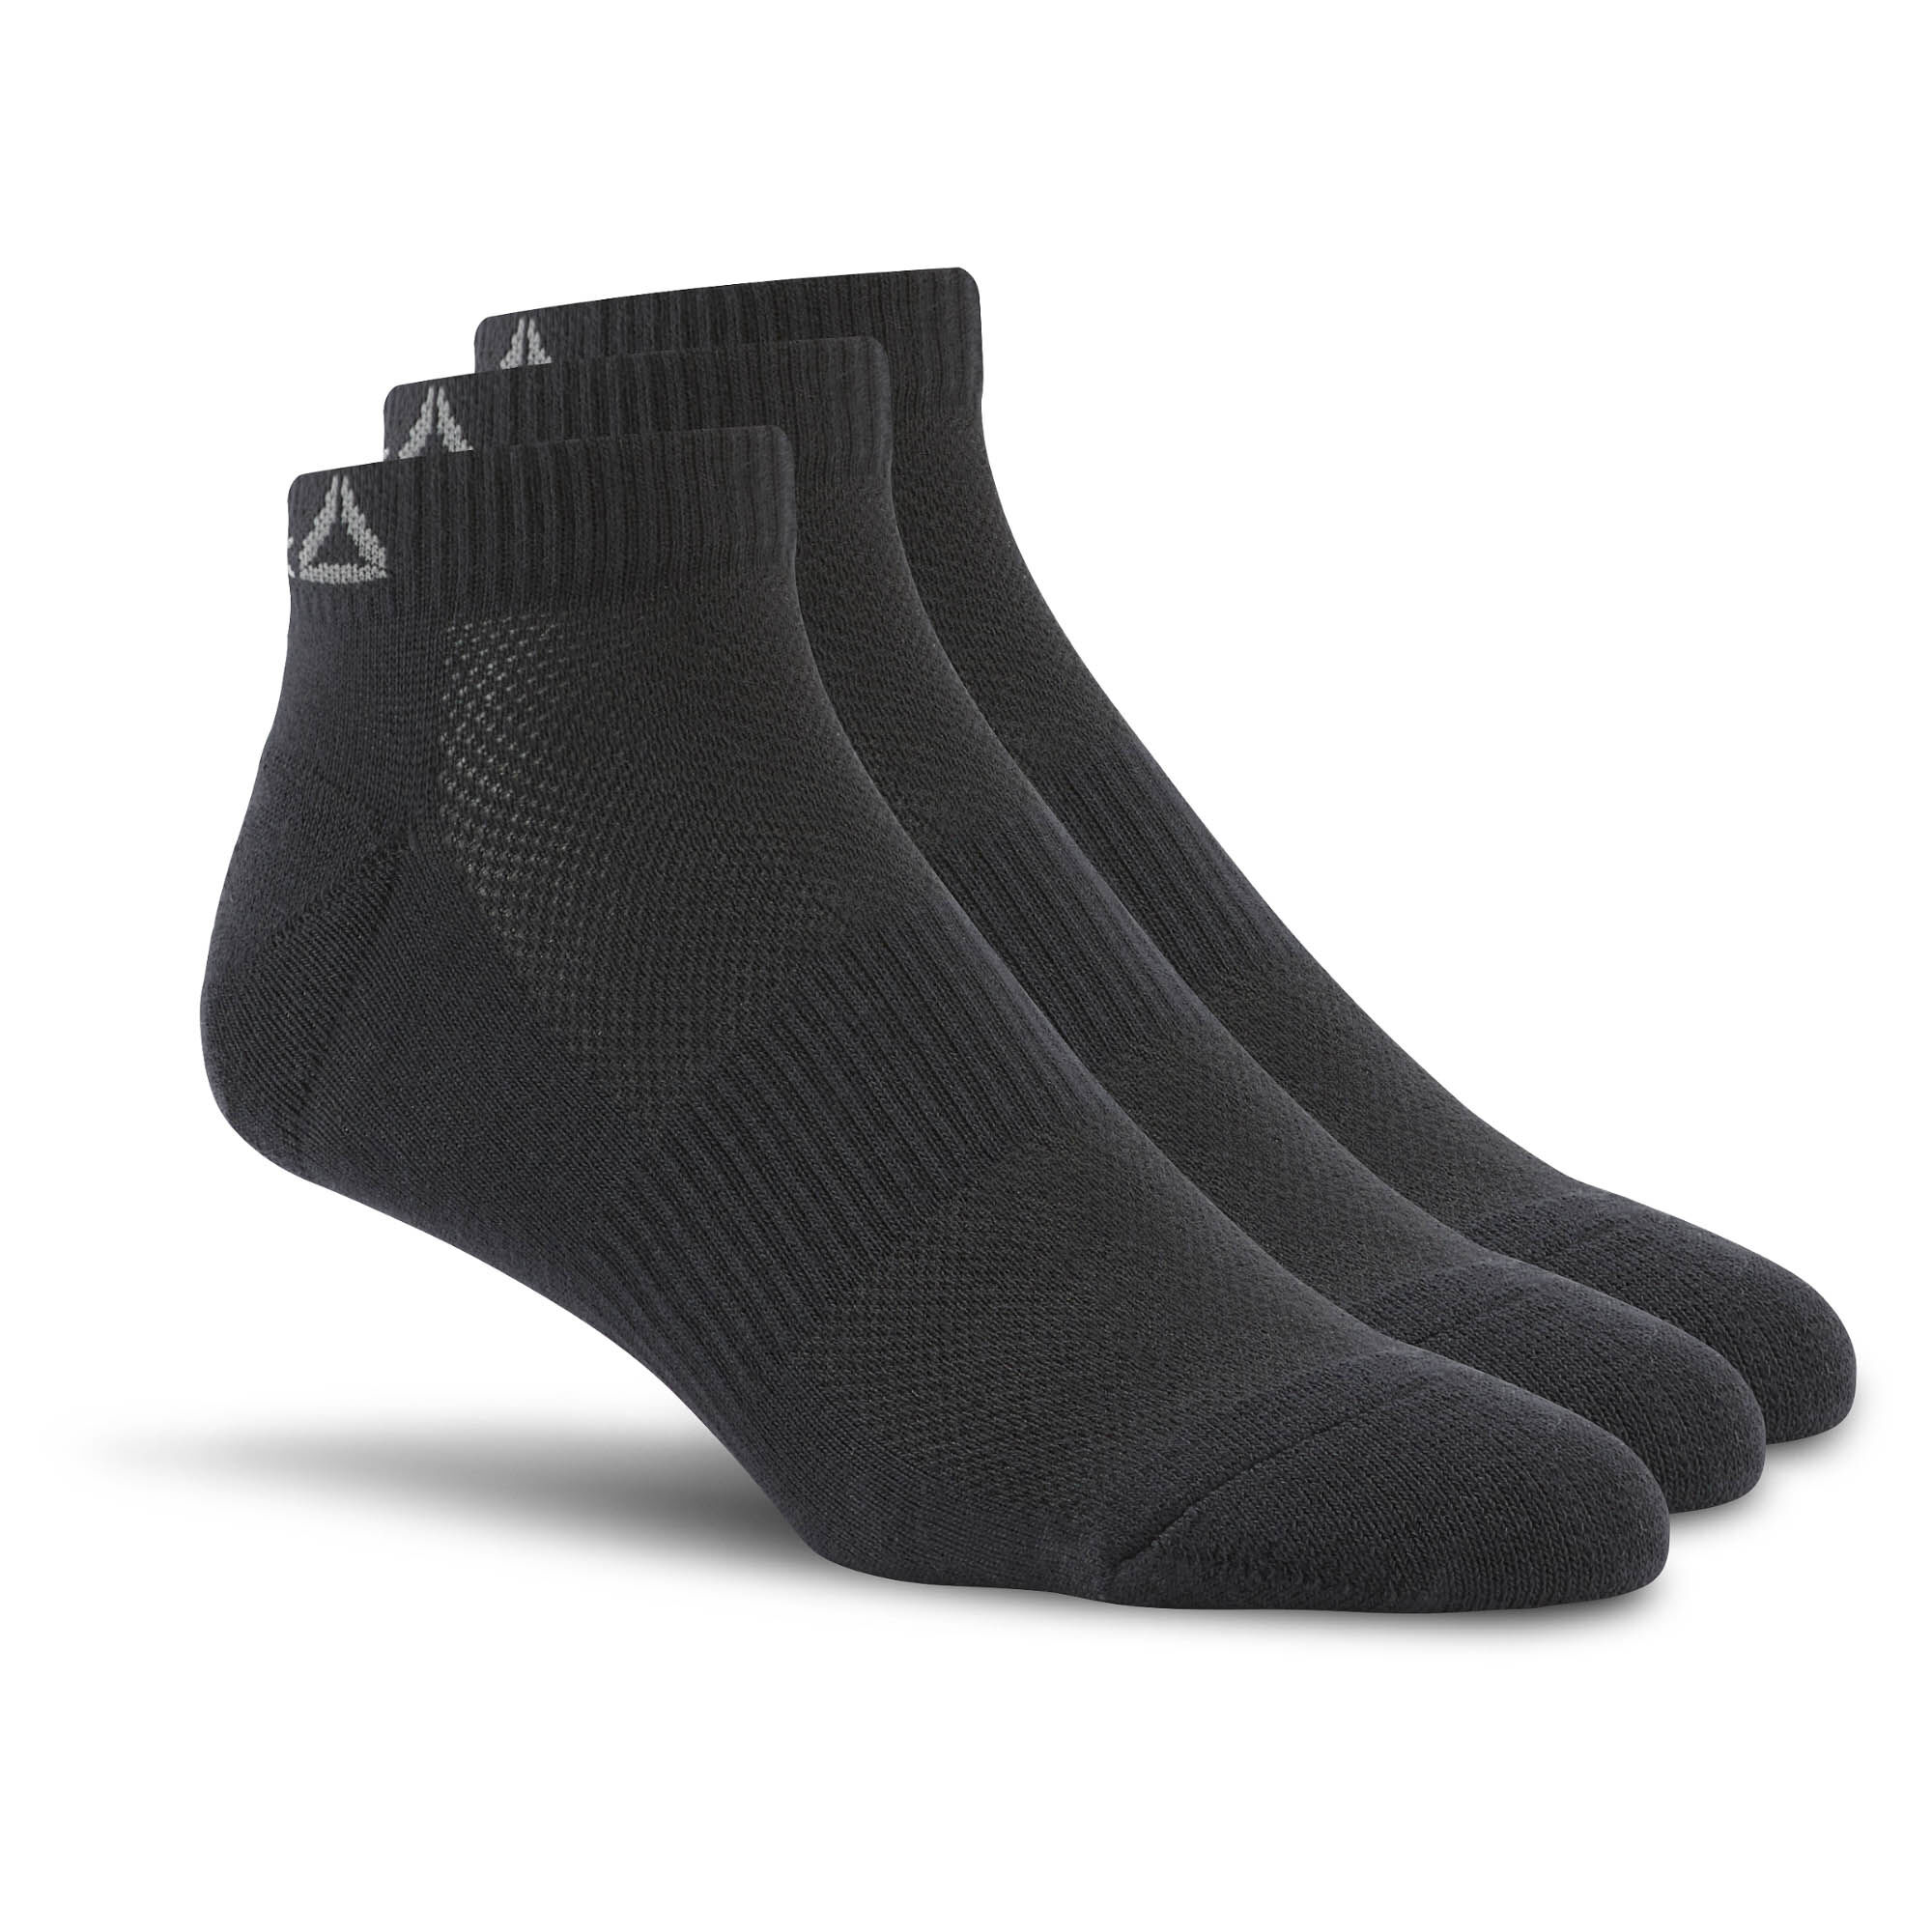 three pack logo invisible socks - Black Reebok From China Free Shipping Low Price a0msVTpby